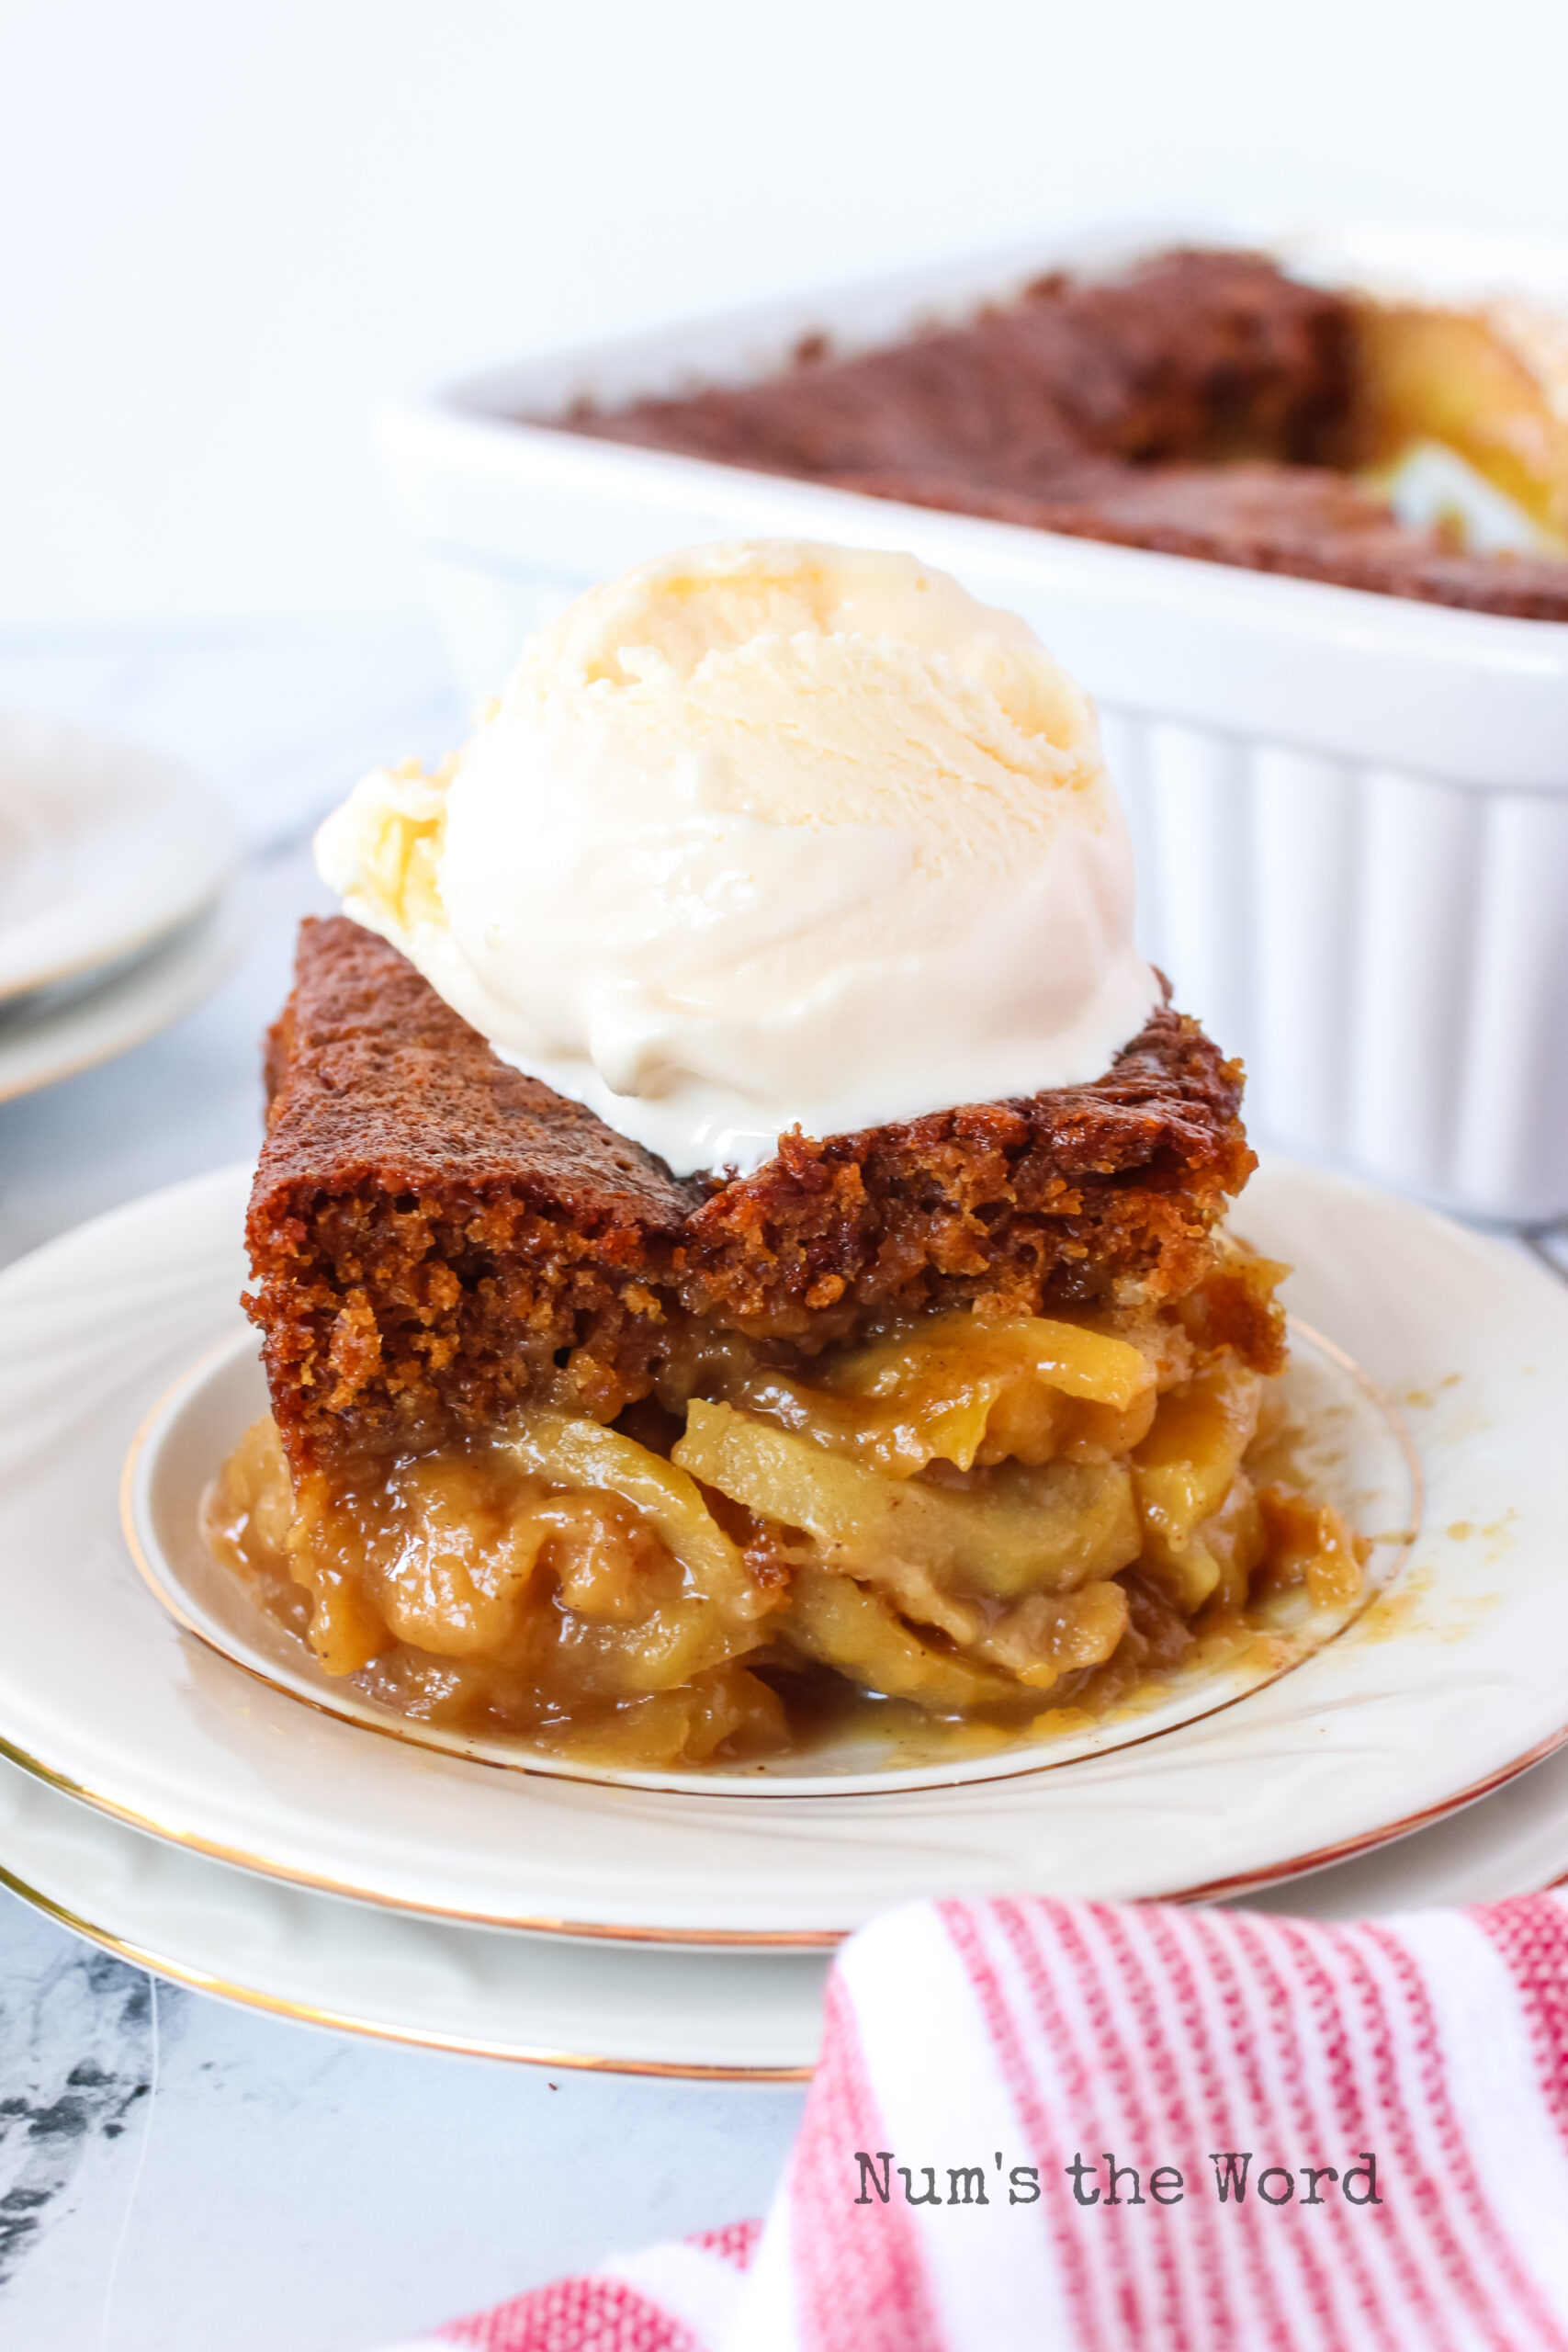 slice of cake on a plate with apples under and a scoop of ice cream on top.